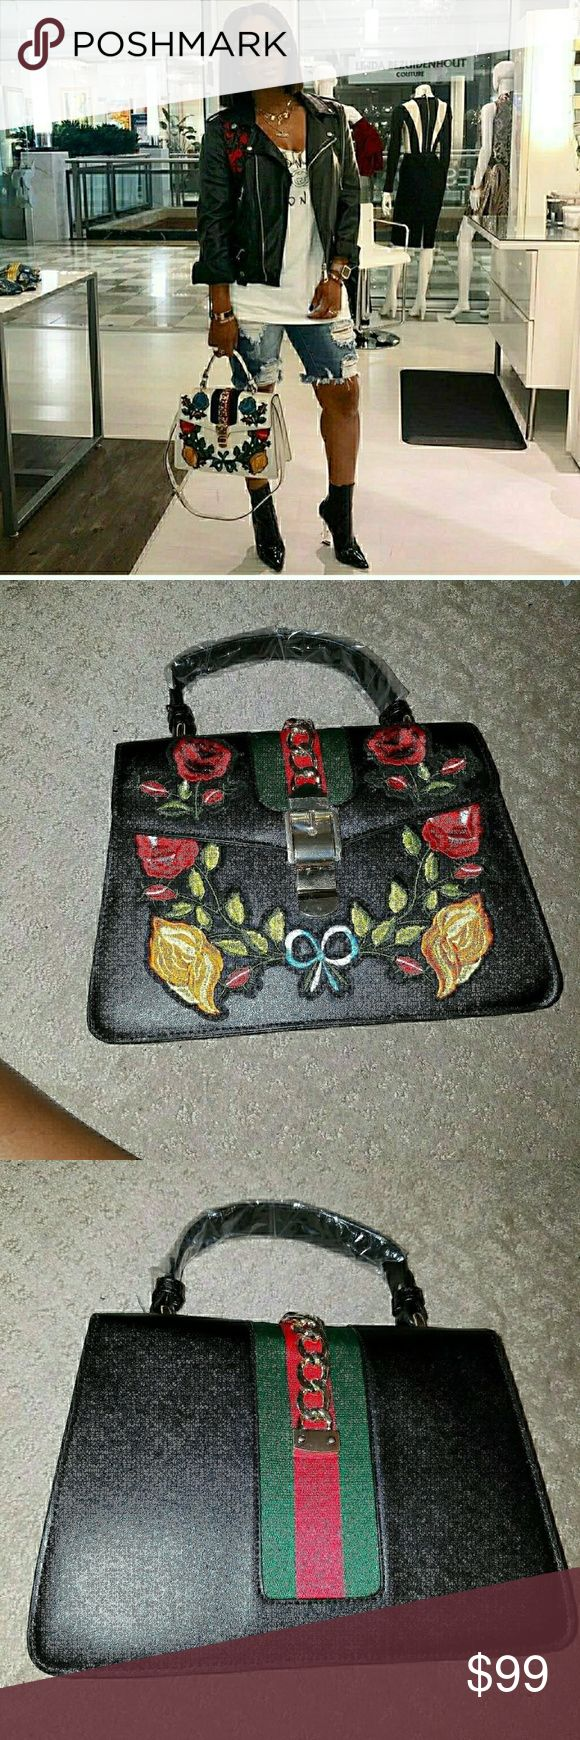 """Ivyvie Top Handle Bag The lvyie bag in a top handle shape with nylon web embedded under the smooth faux leather and decorated with a gold like finish chain and buckle. The bag is further enhanced with embroidered flower appliqués. I  Black is the ONLY COLOR in stock!  Price is self explanatory.   No brand tags per inside.  Measurements: 8.6x3.94x11in 23"""" inch drop strap included.  🔴PRICES FIRM LADIES 🔴 Gucci Bags"""